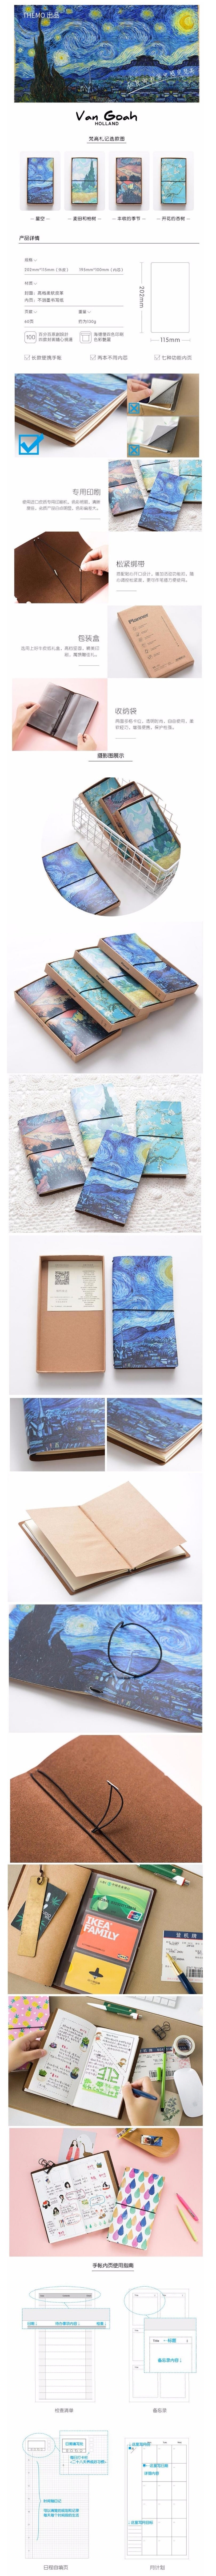 Van Gogh Traveler's Notebook - Otrio Stationery - Planner - Vintage